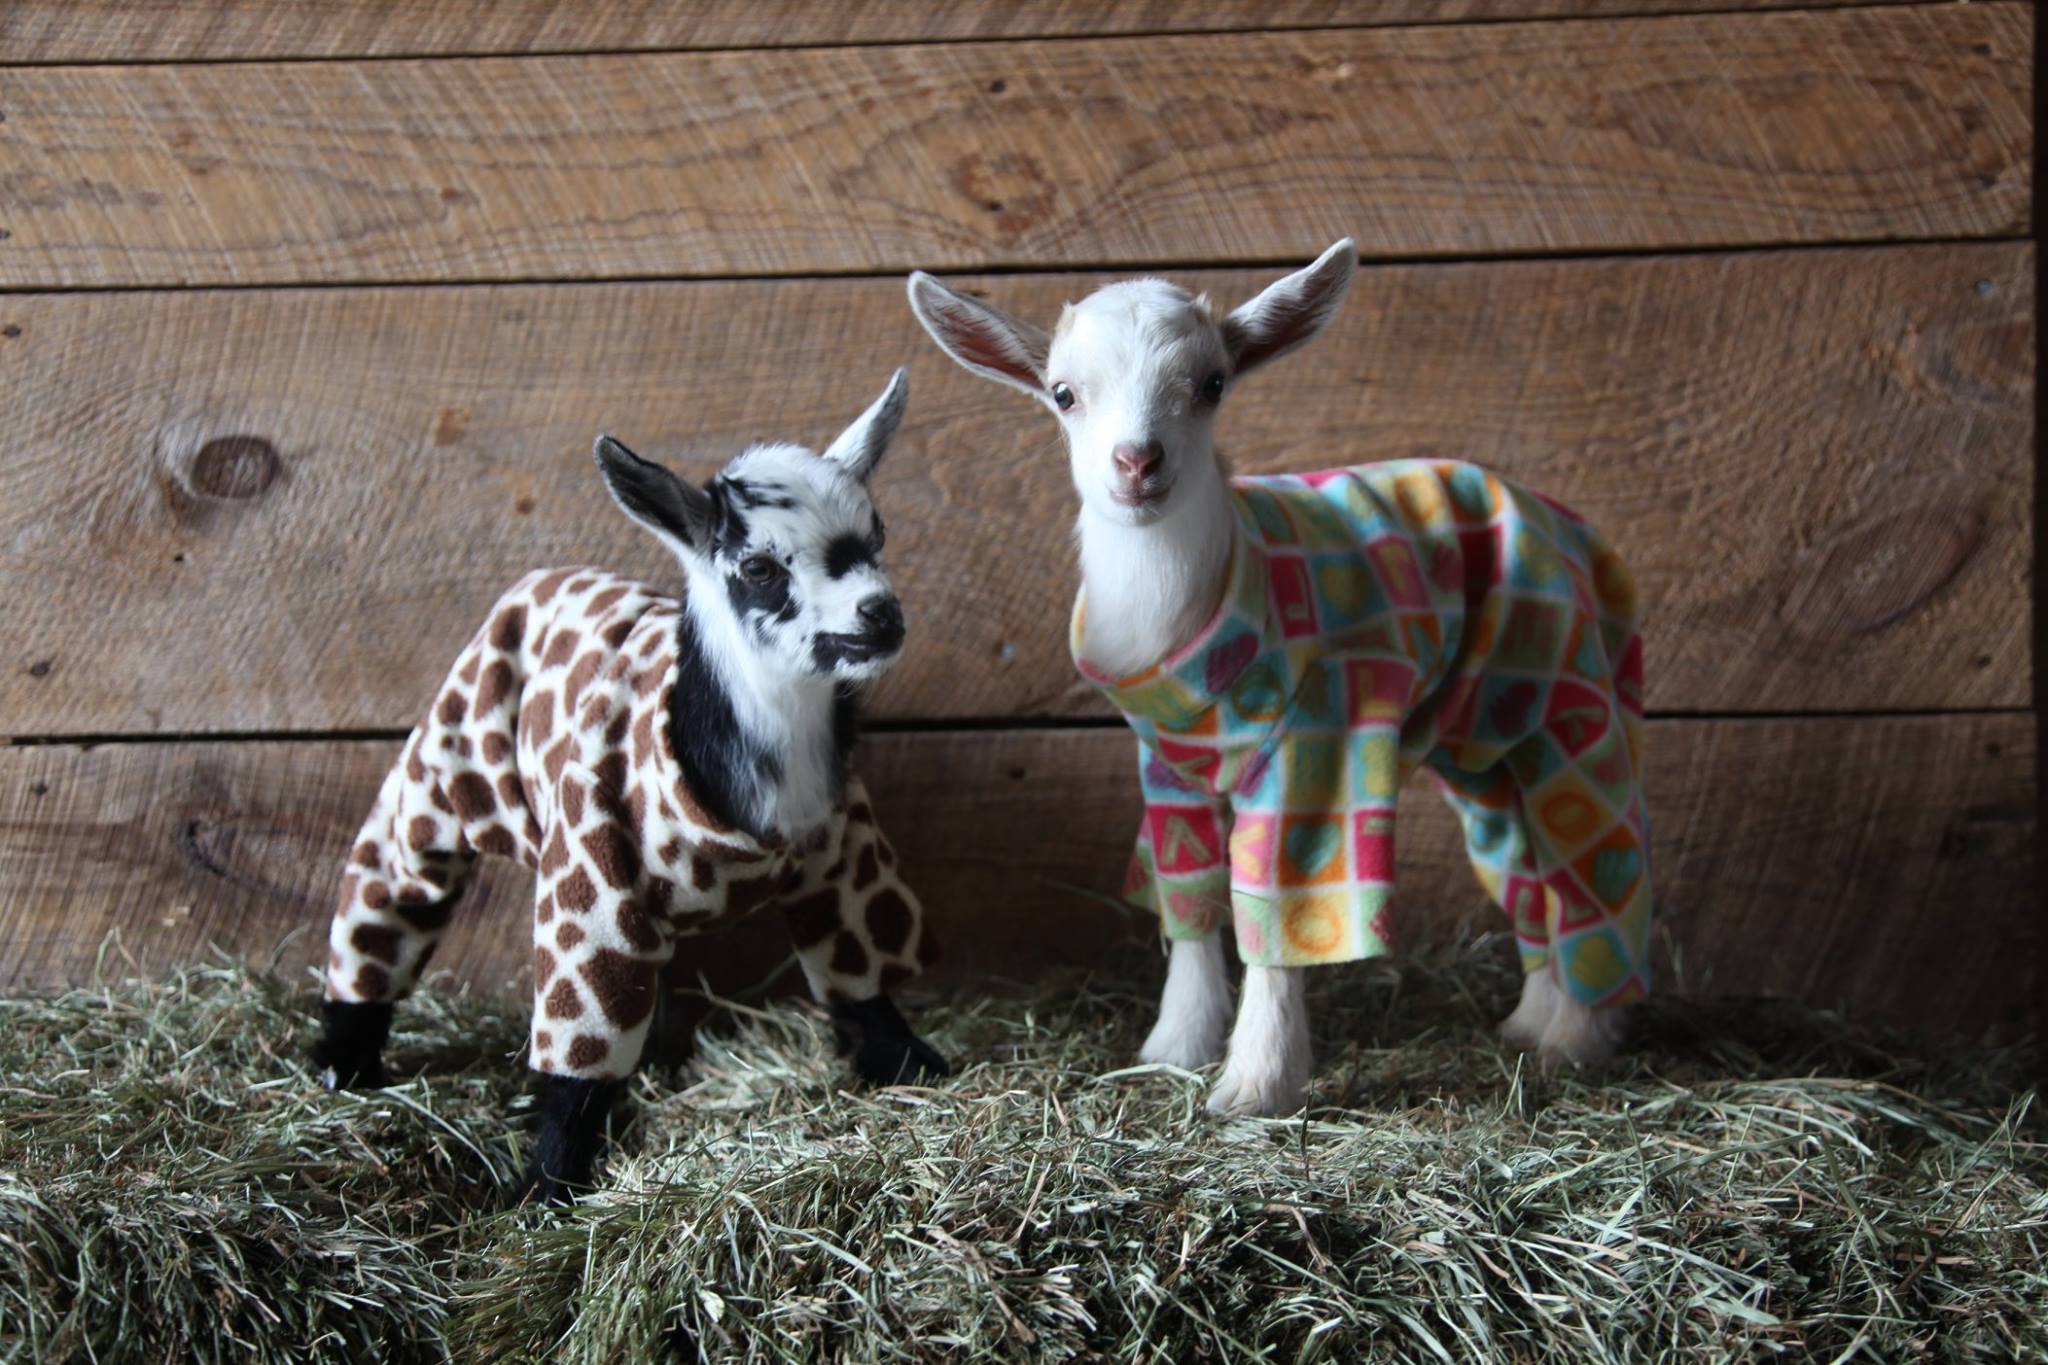 Baby Goats in PJs Frolicking in Colorful Onsies